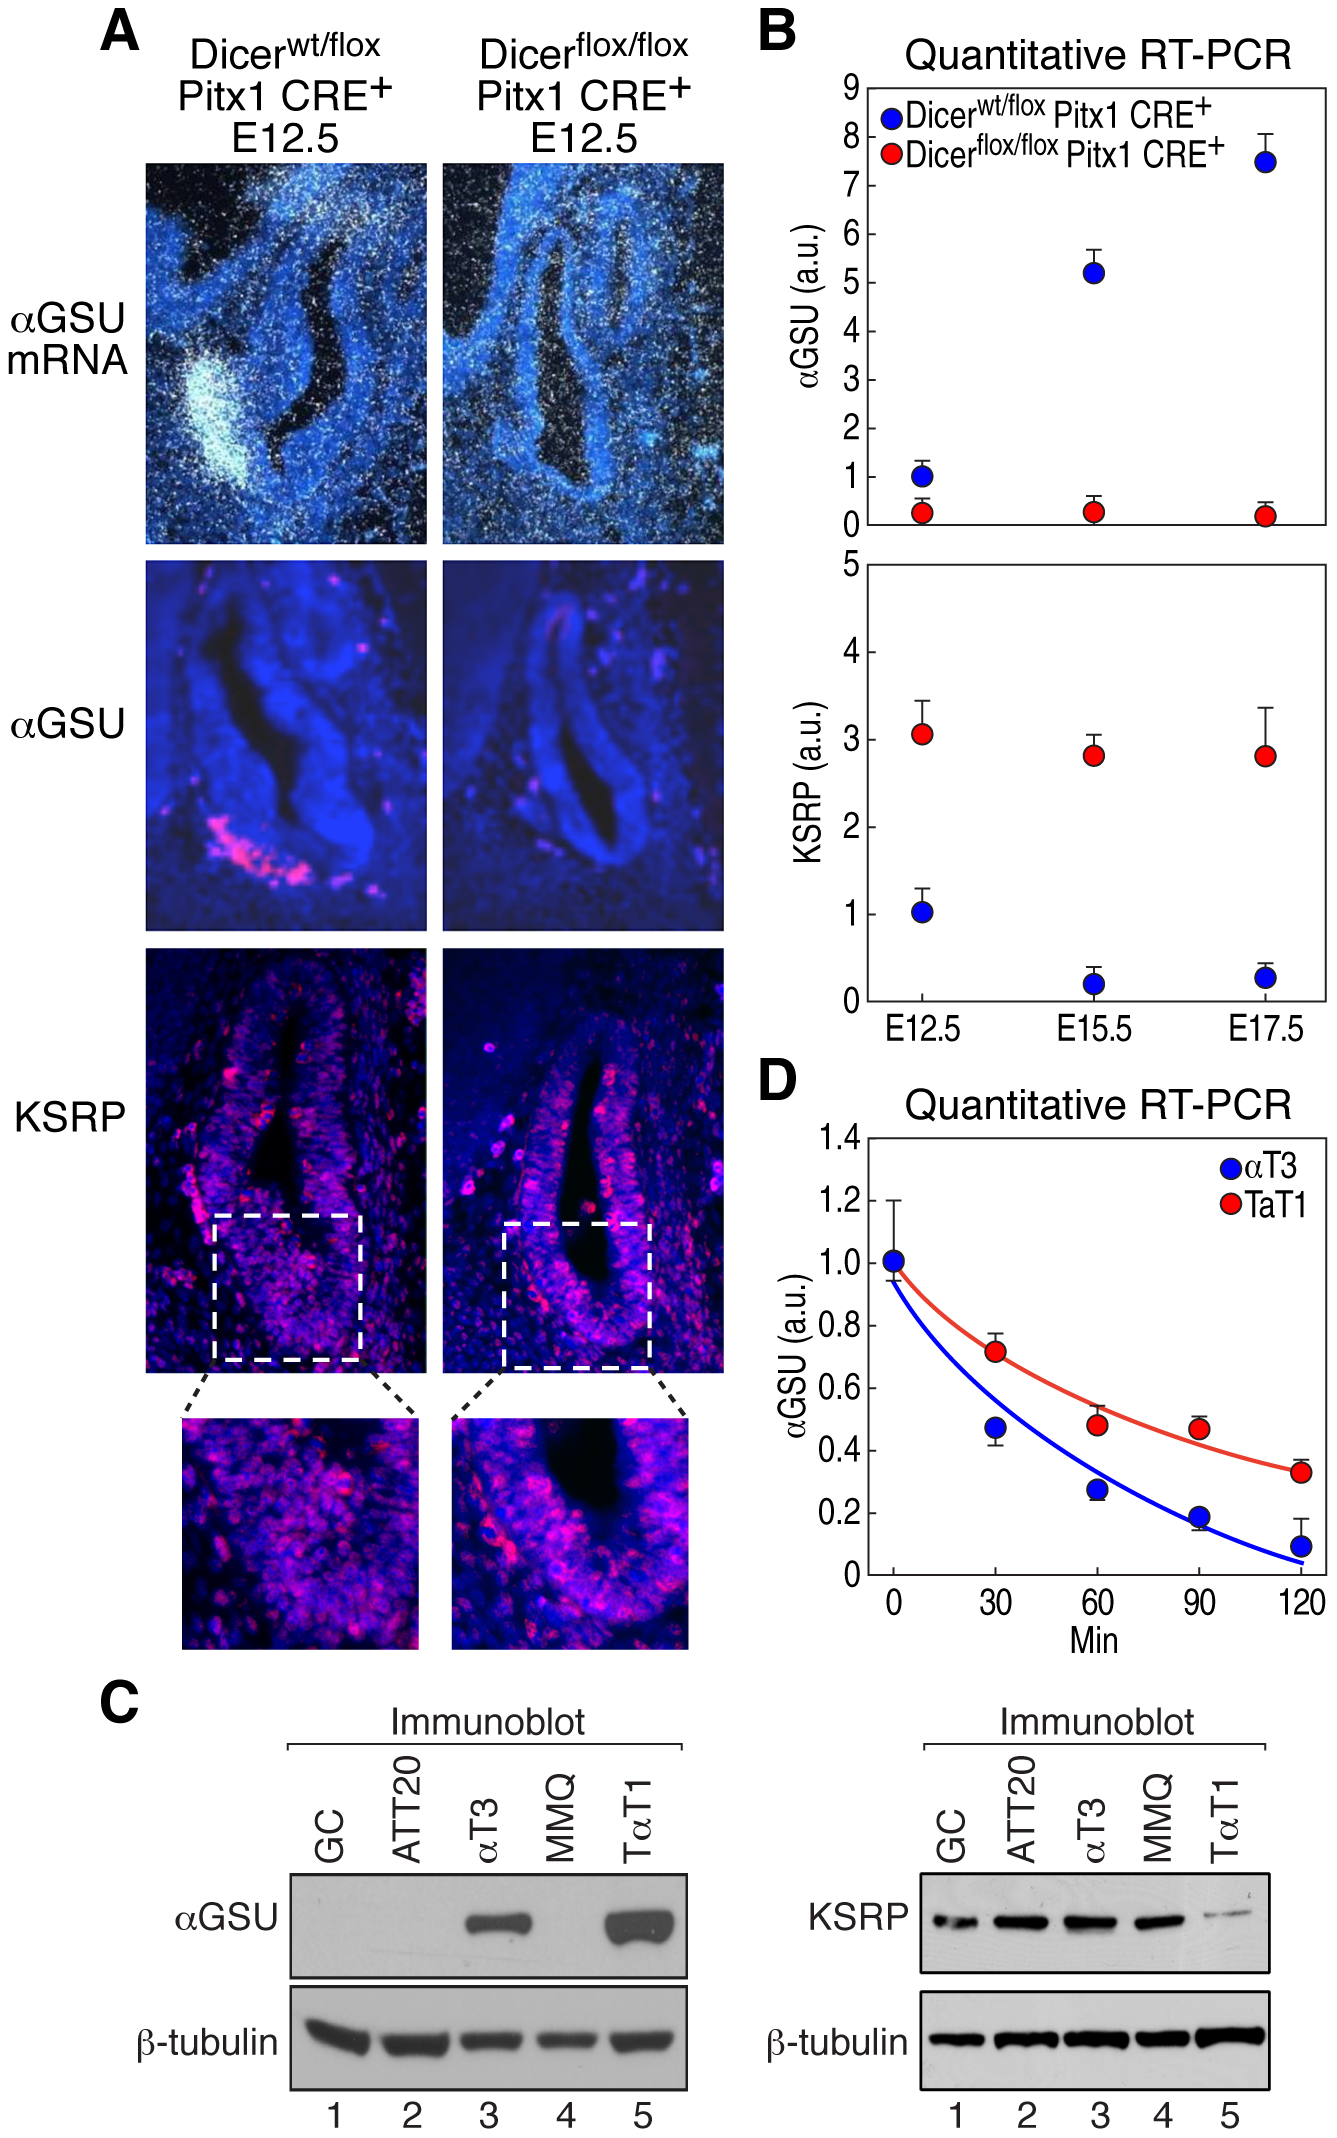 Dicer regulates αGSU and KSRP expression during pituitary development.